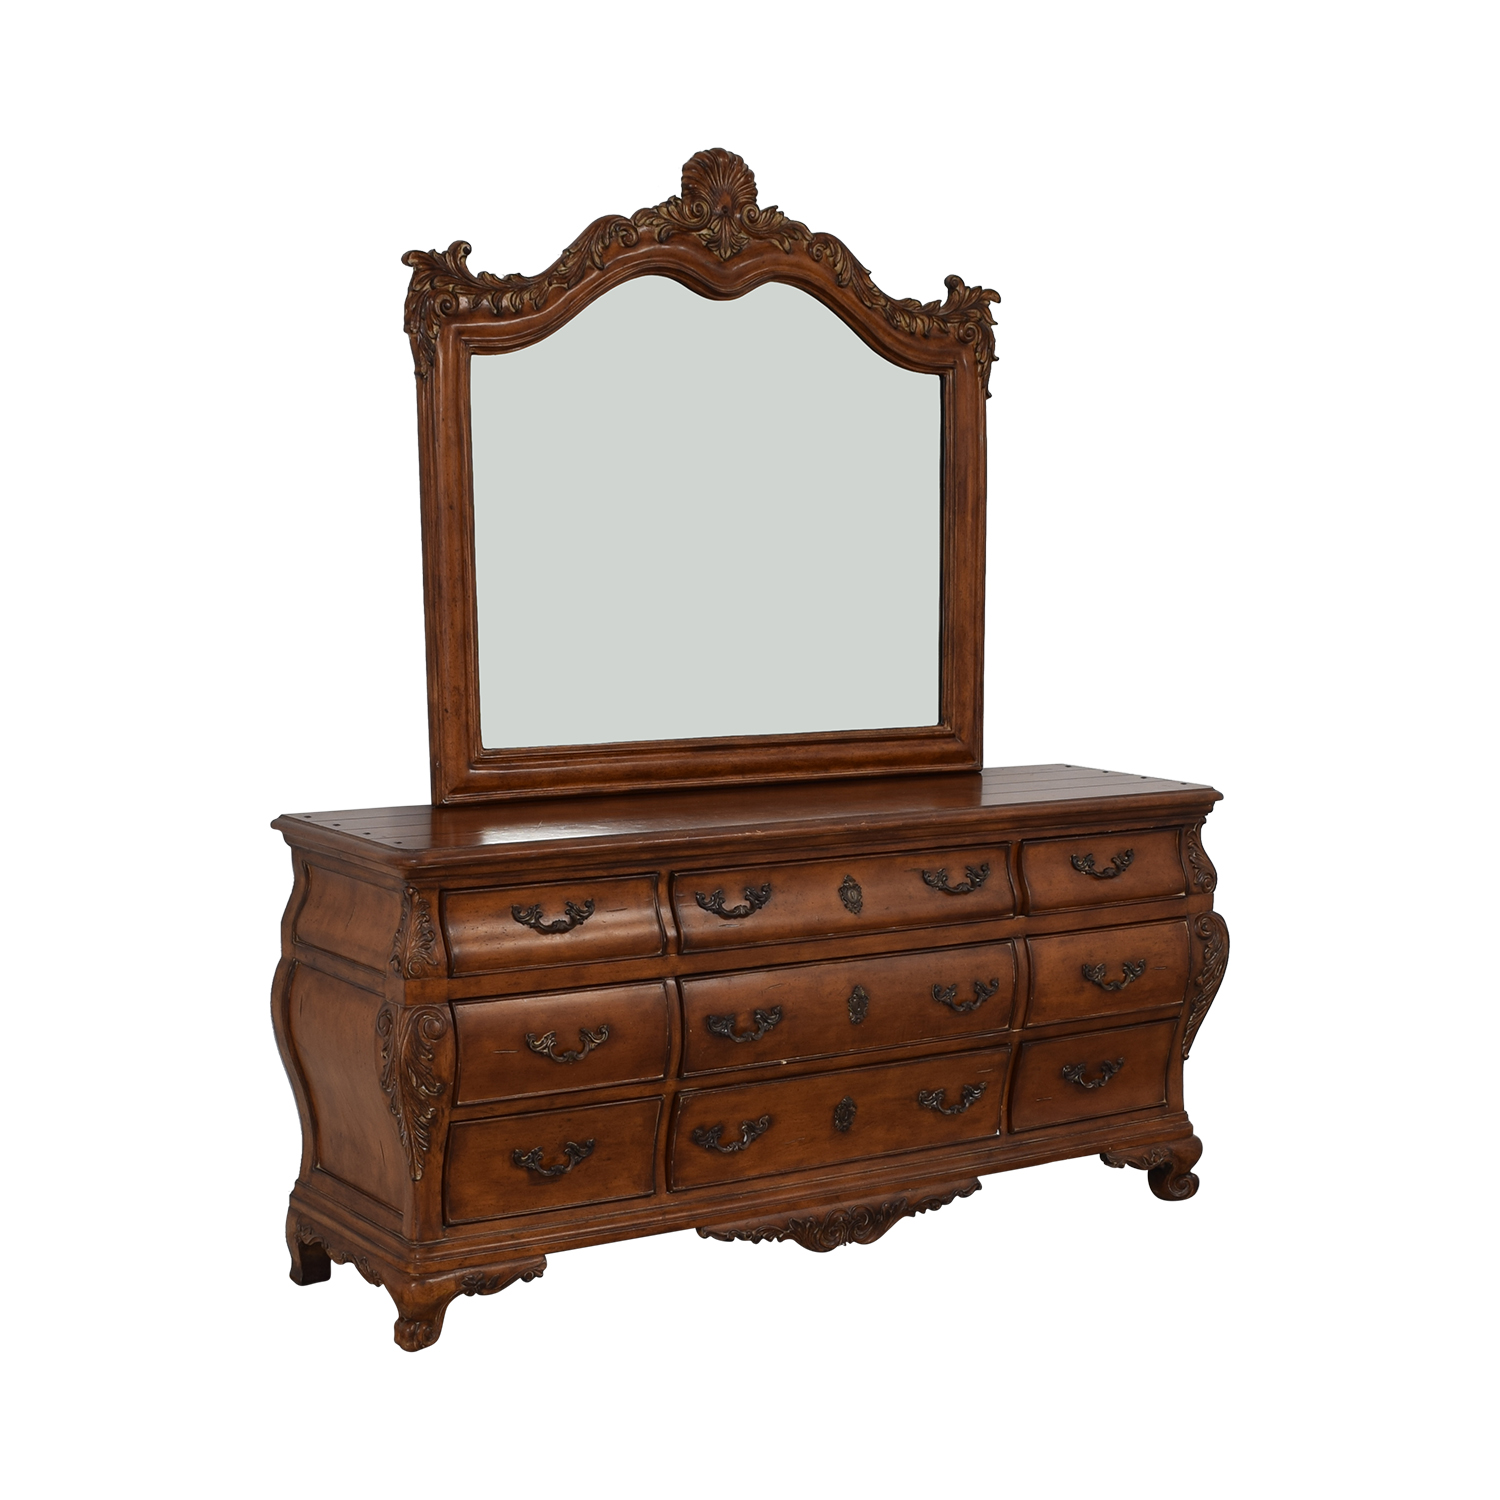 Thomasville Thomasville Chateau Provence Bombe Dresser and Landscape Mirror brown